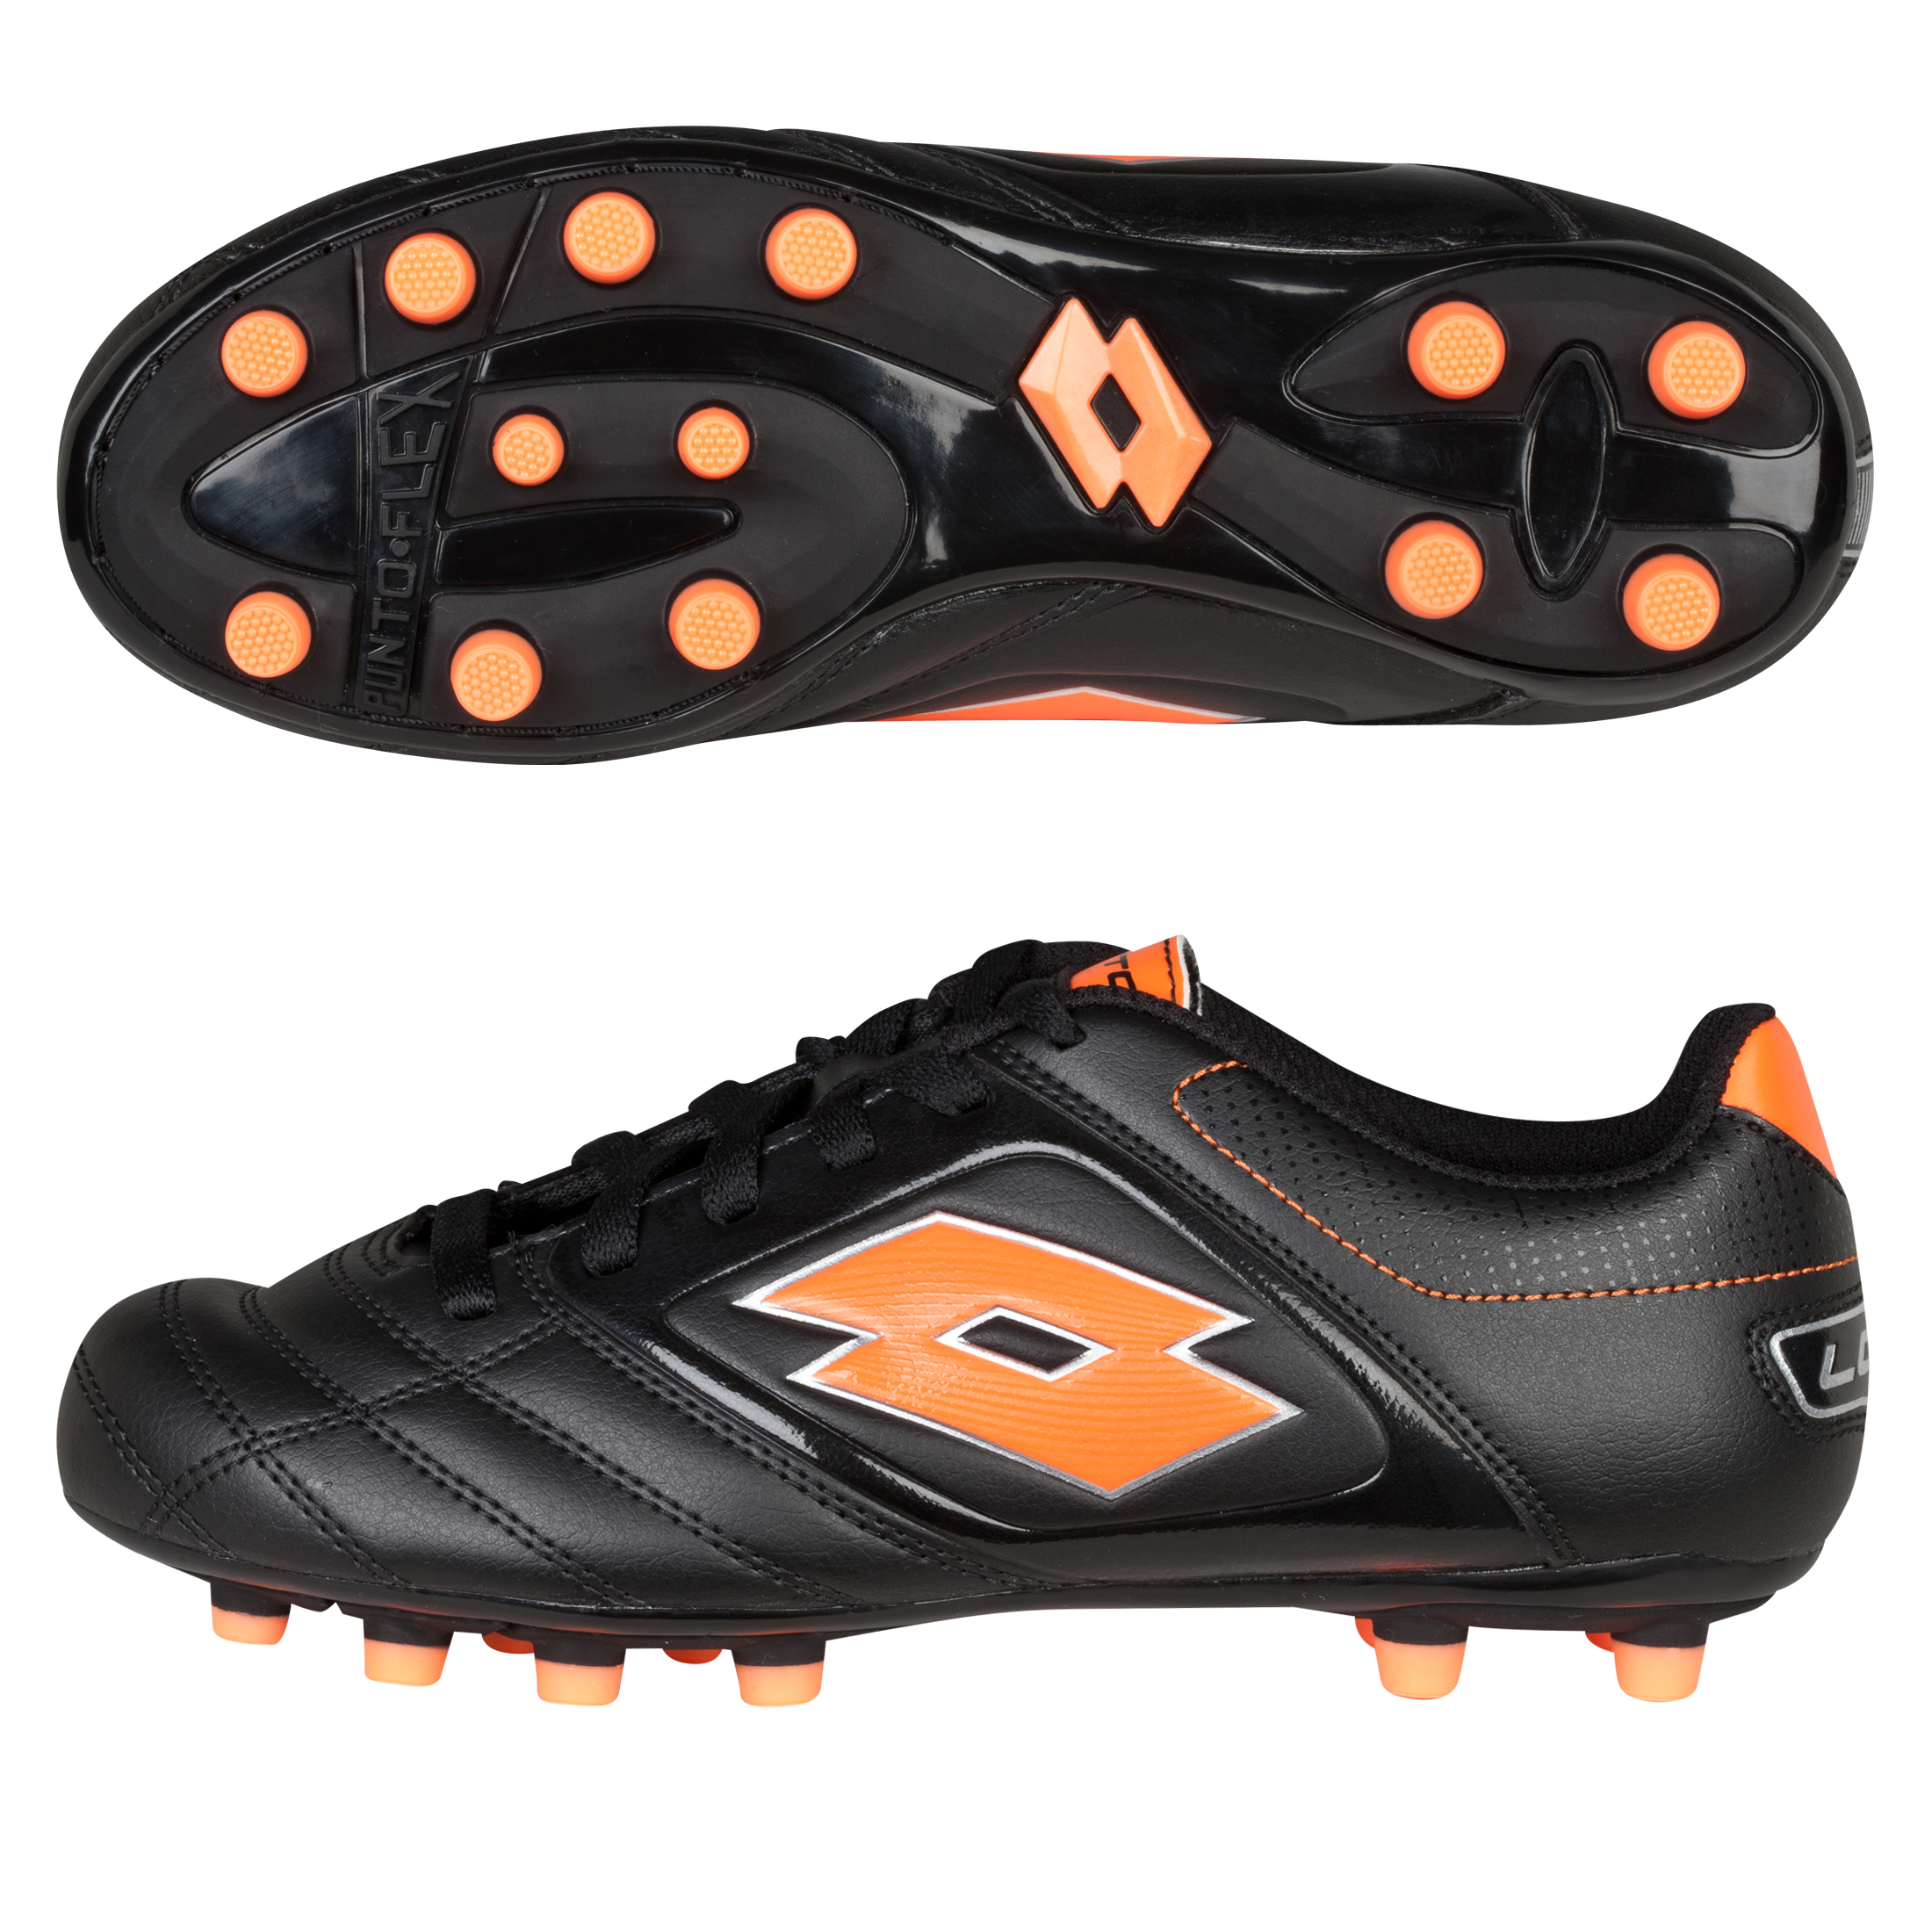 Lotto Stadio Potenza 500 FG Black/Orange Fluo